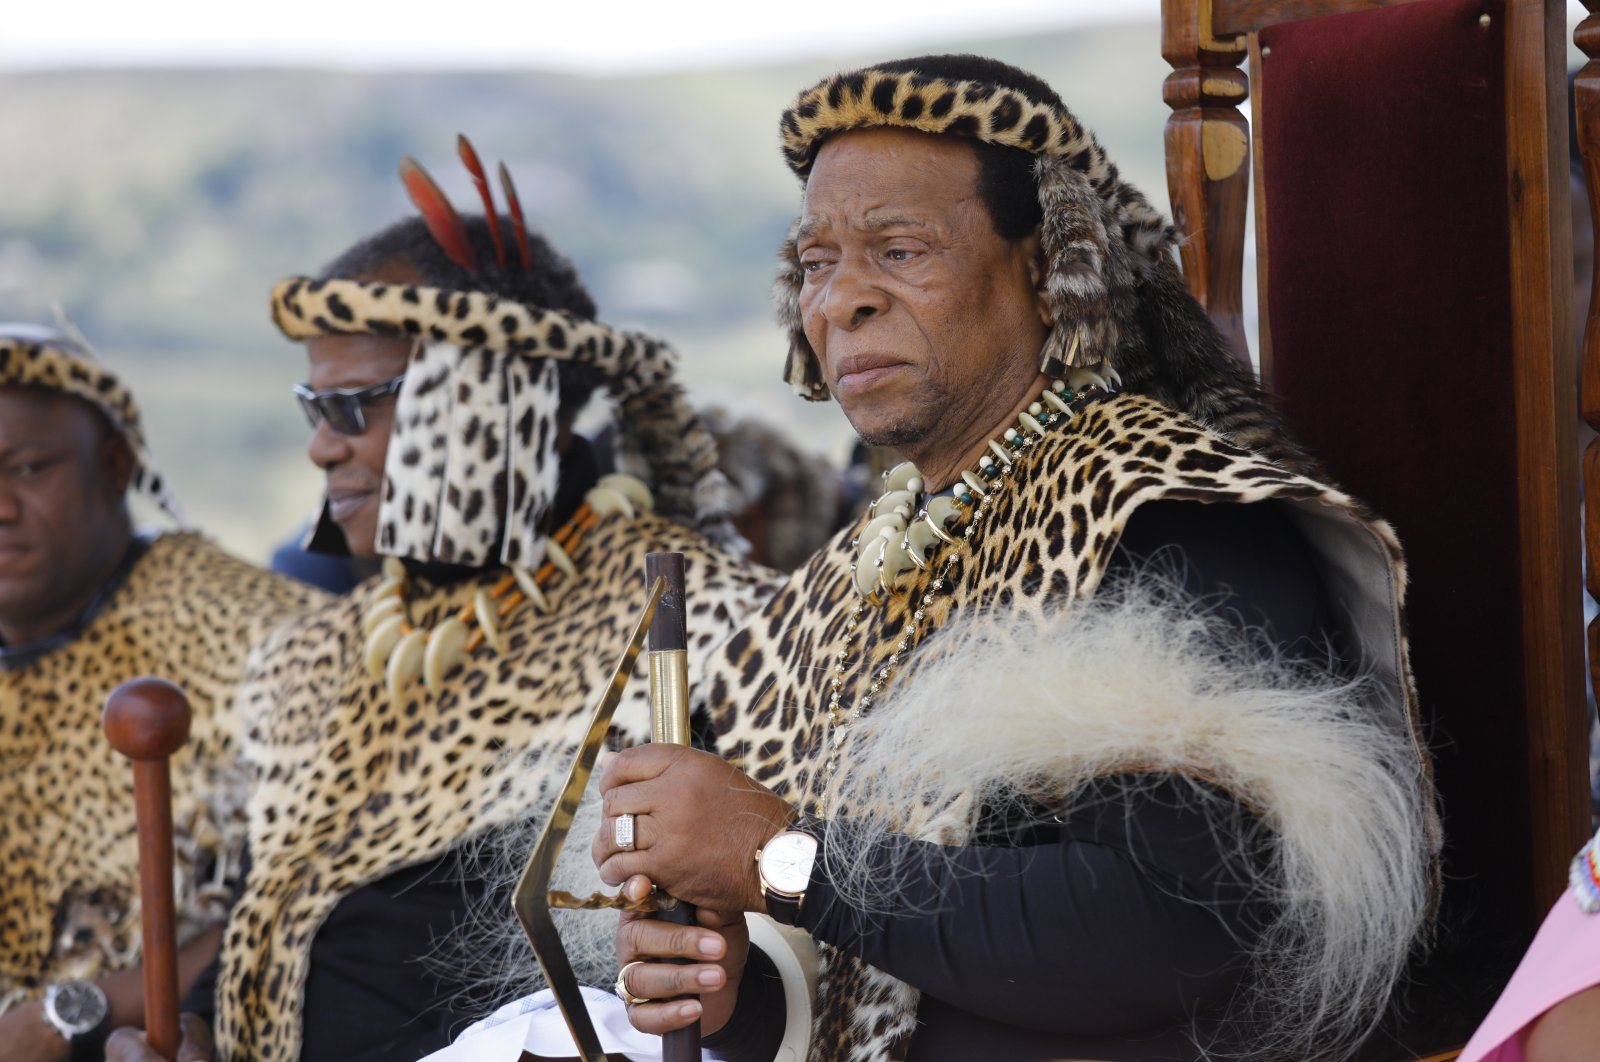 Zulu King Goodwill Zwelithini (R) watches members of a group perform as Zulu warriors and British Soldiers on the 140th-anniversary of the Battle of Isandluana in Dundee, South Africa, Jan. 25, 2019.